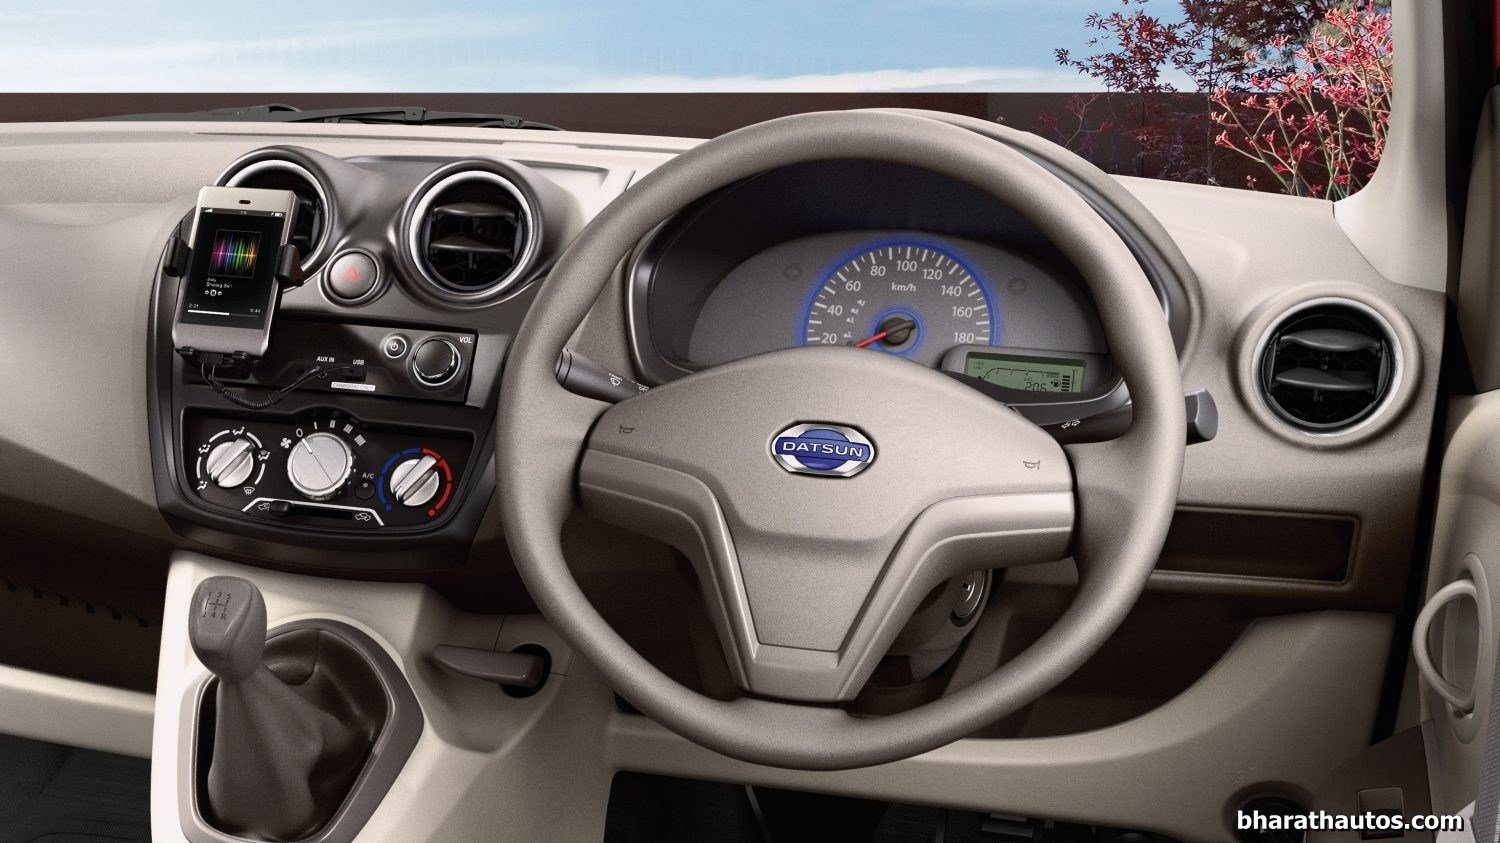 New Datsun Go 7 Seater Mpv Launched In India At Rs 3 79 Lakh On This Month